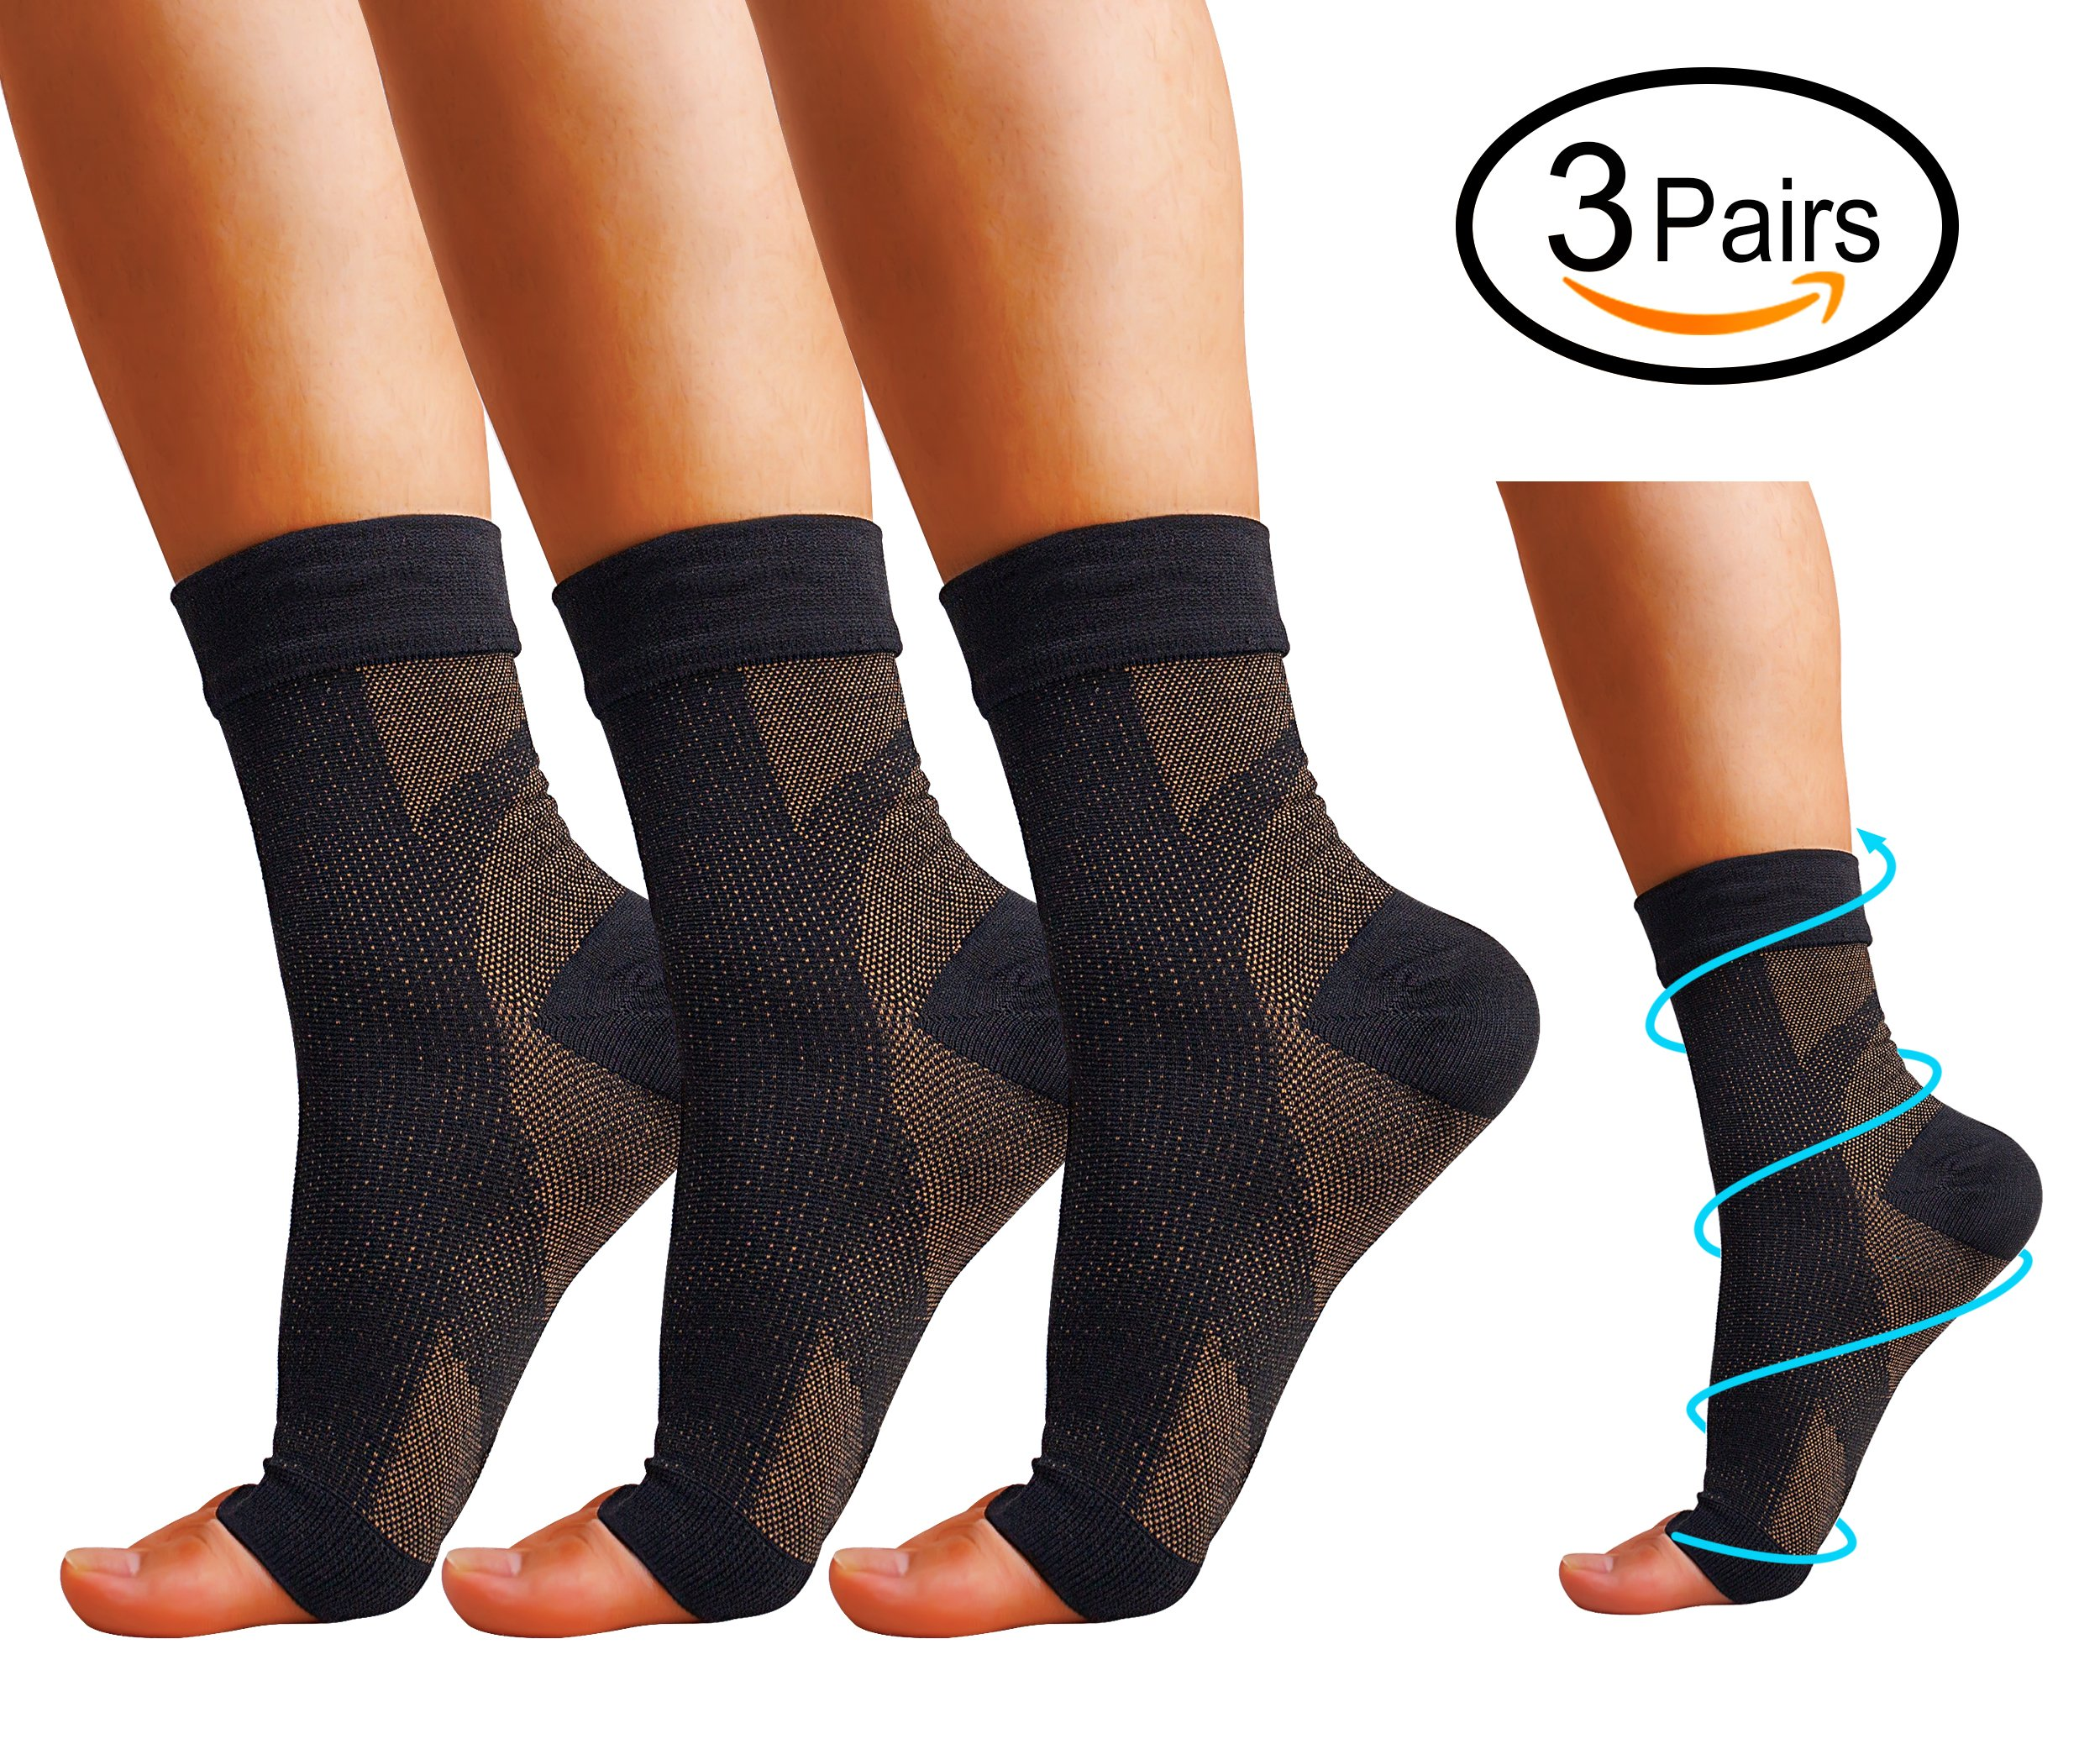 Plantar Fasciitis Compression Socks, 3 Pairs Copper Compression Foot Sleeves for Men Women - Best Plantar Fasciitis Brace for Pain Relief, Heel Pain, Best Treatment with Arch Support.